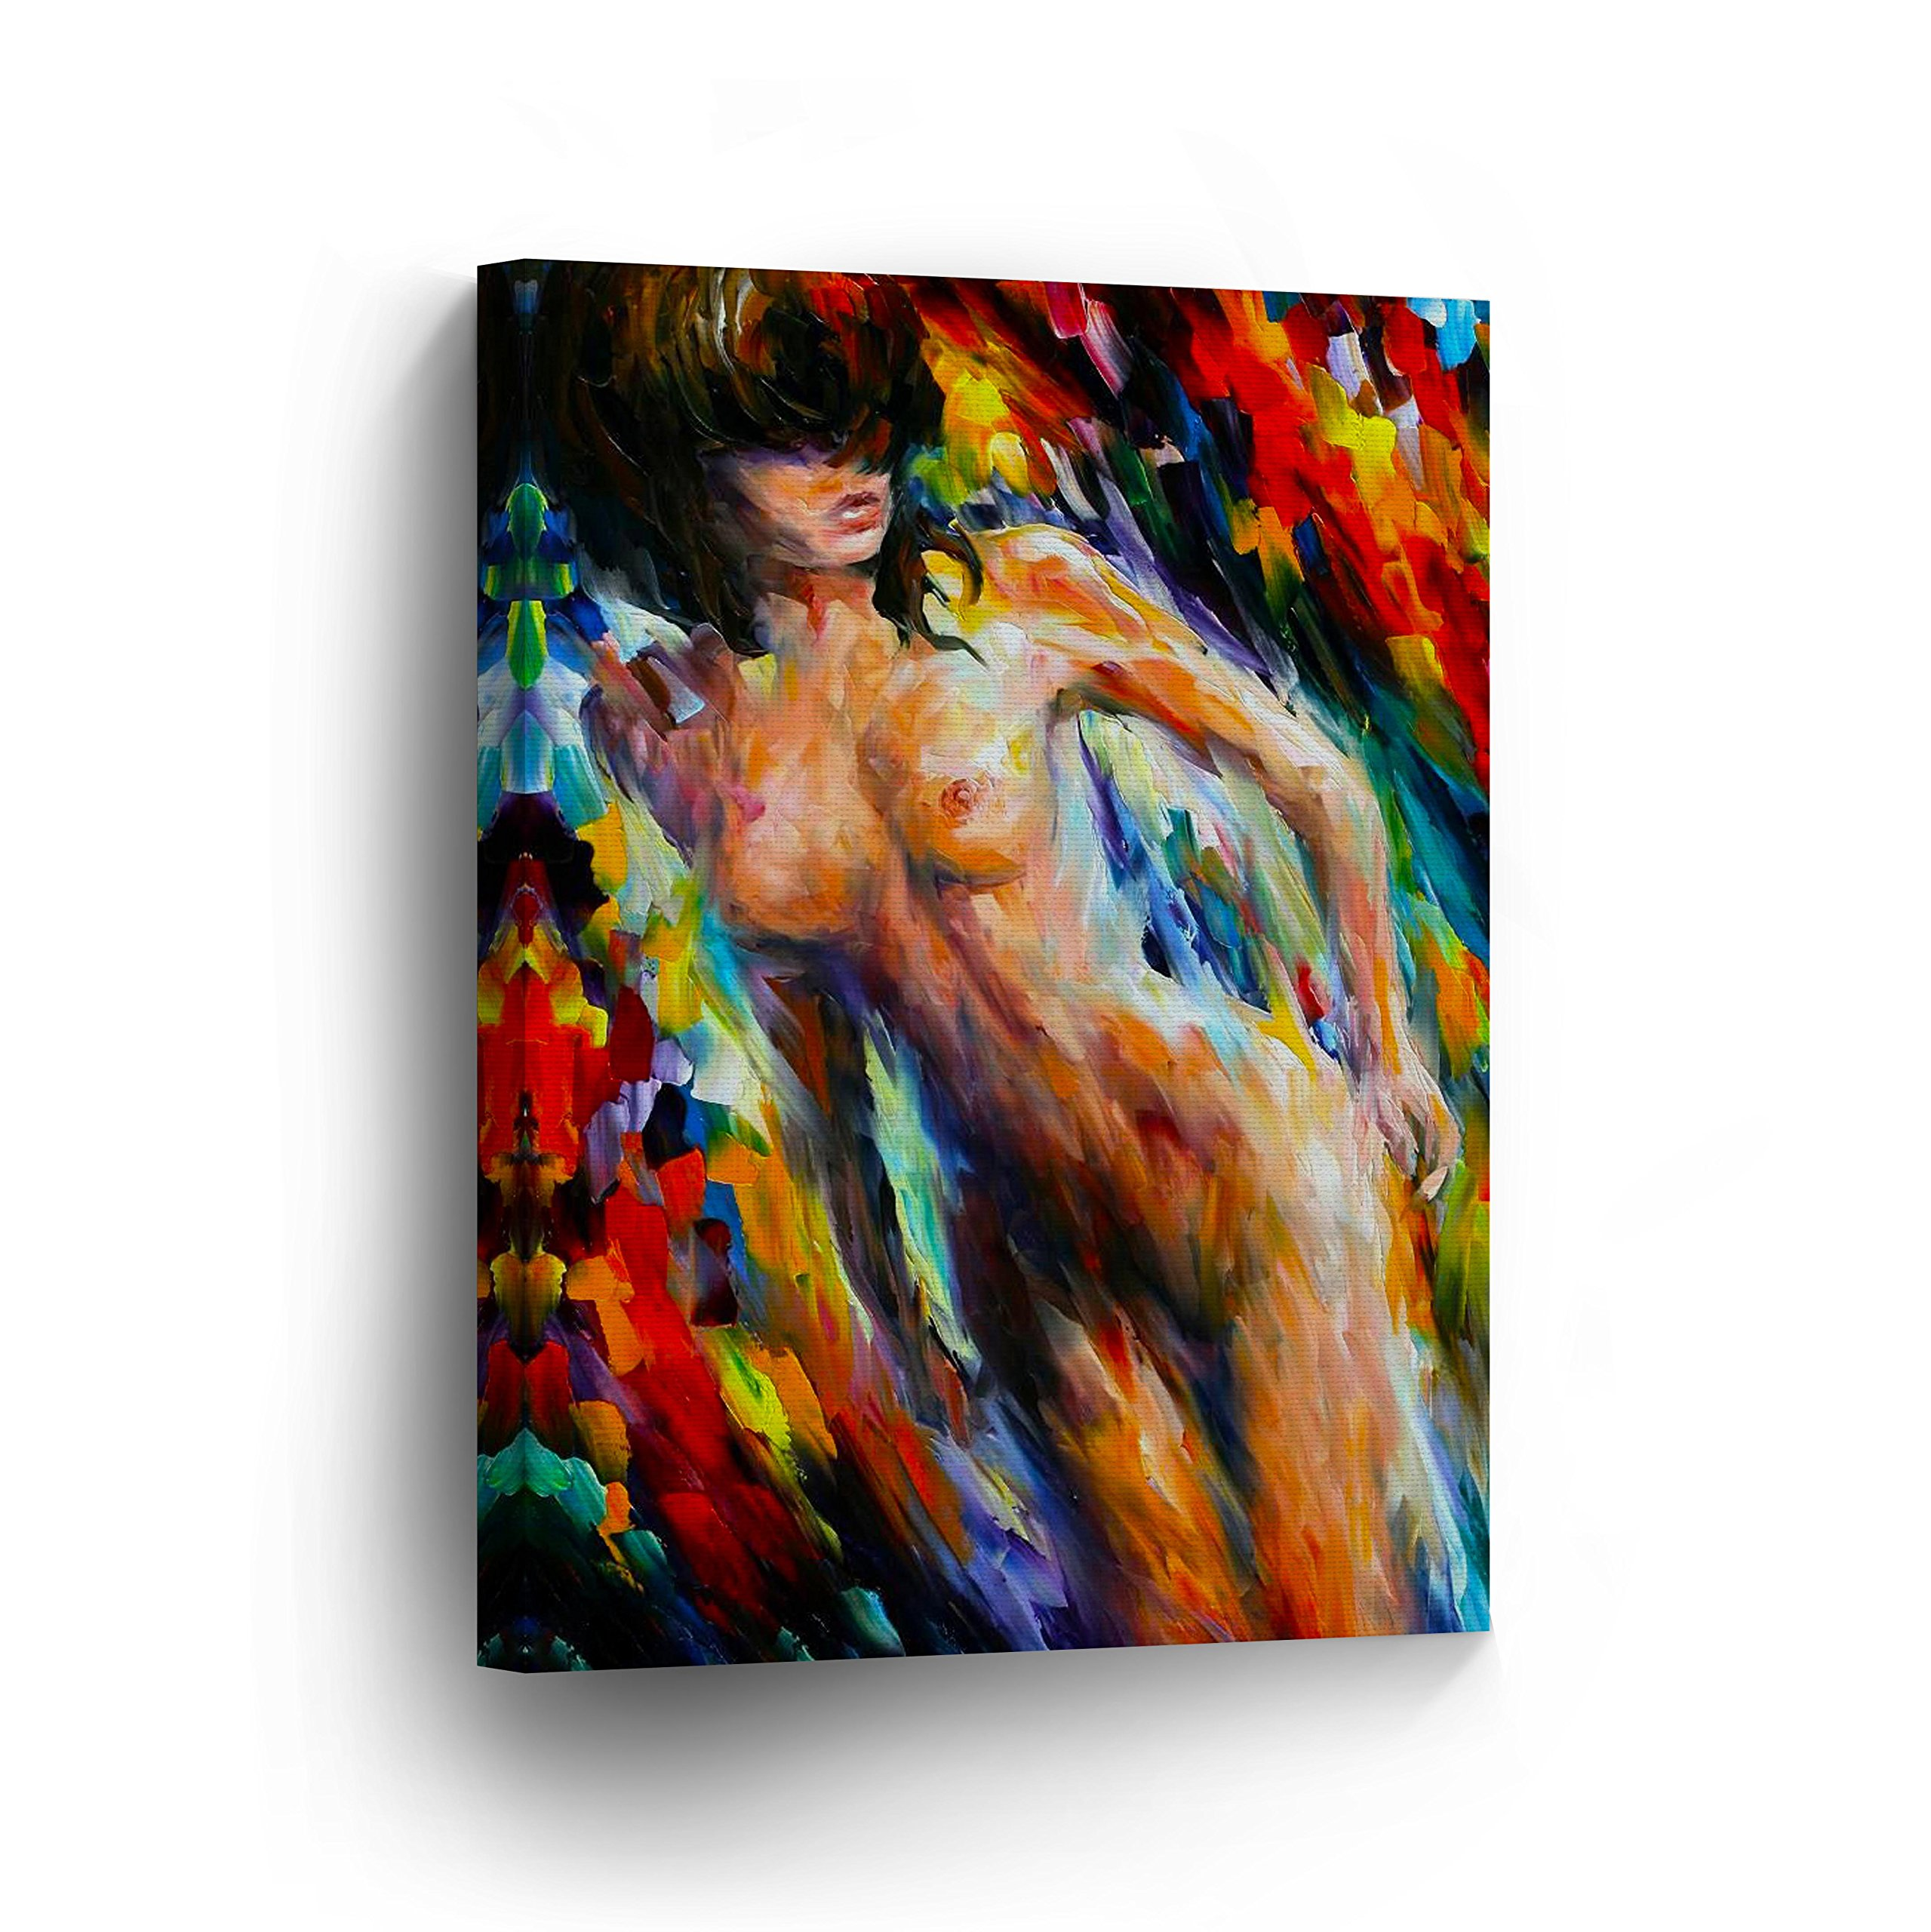 Nude Naked Sexy Woman Girl Lady Colorful Oil Painting CANVAS PRINT Decorative Art Wall Home Artwork / Gallery Wrapped Stretched /Ready to Hang -%100 Handmade in the USA _CA